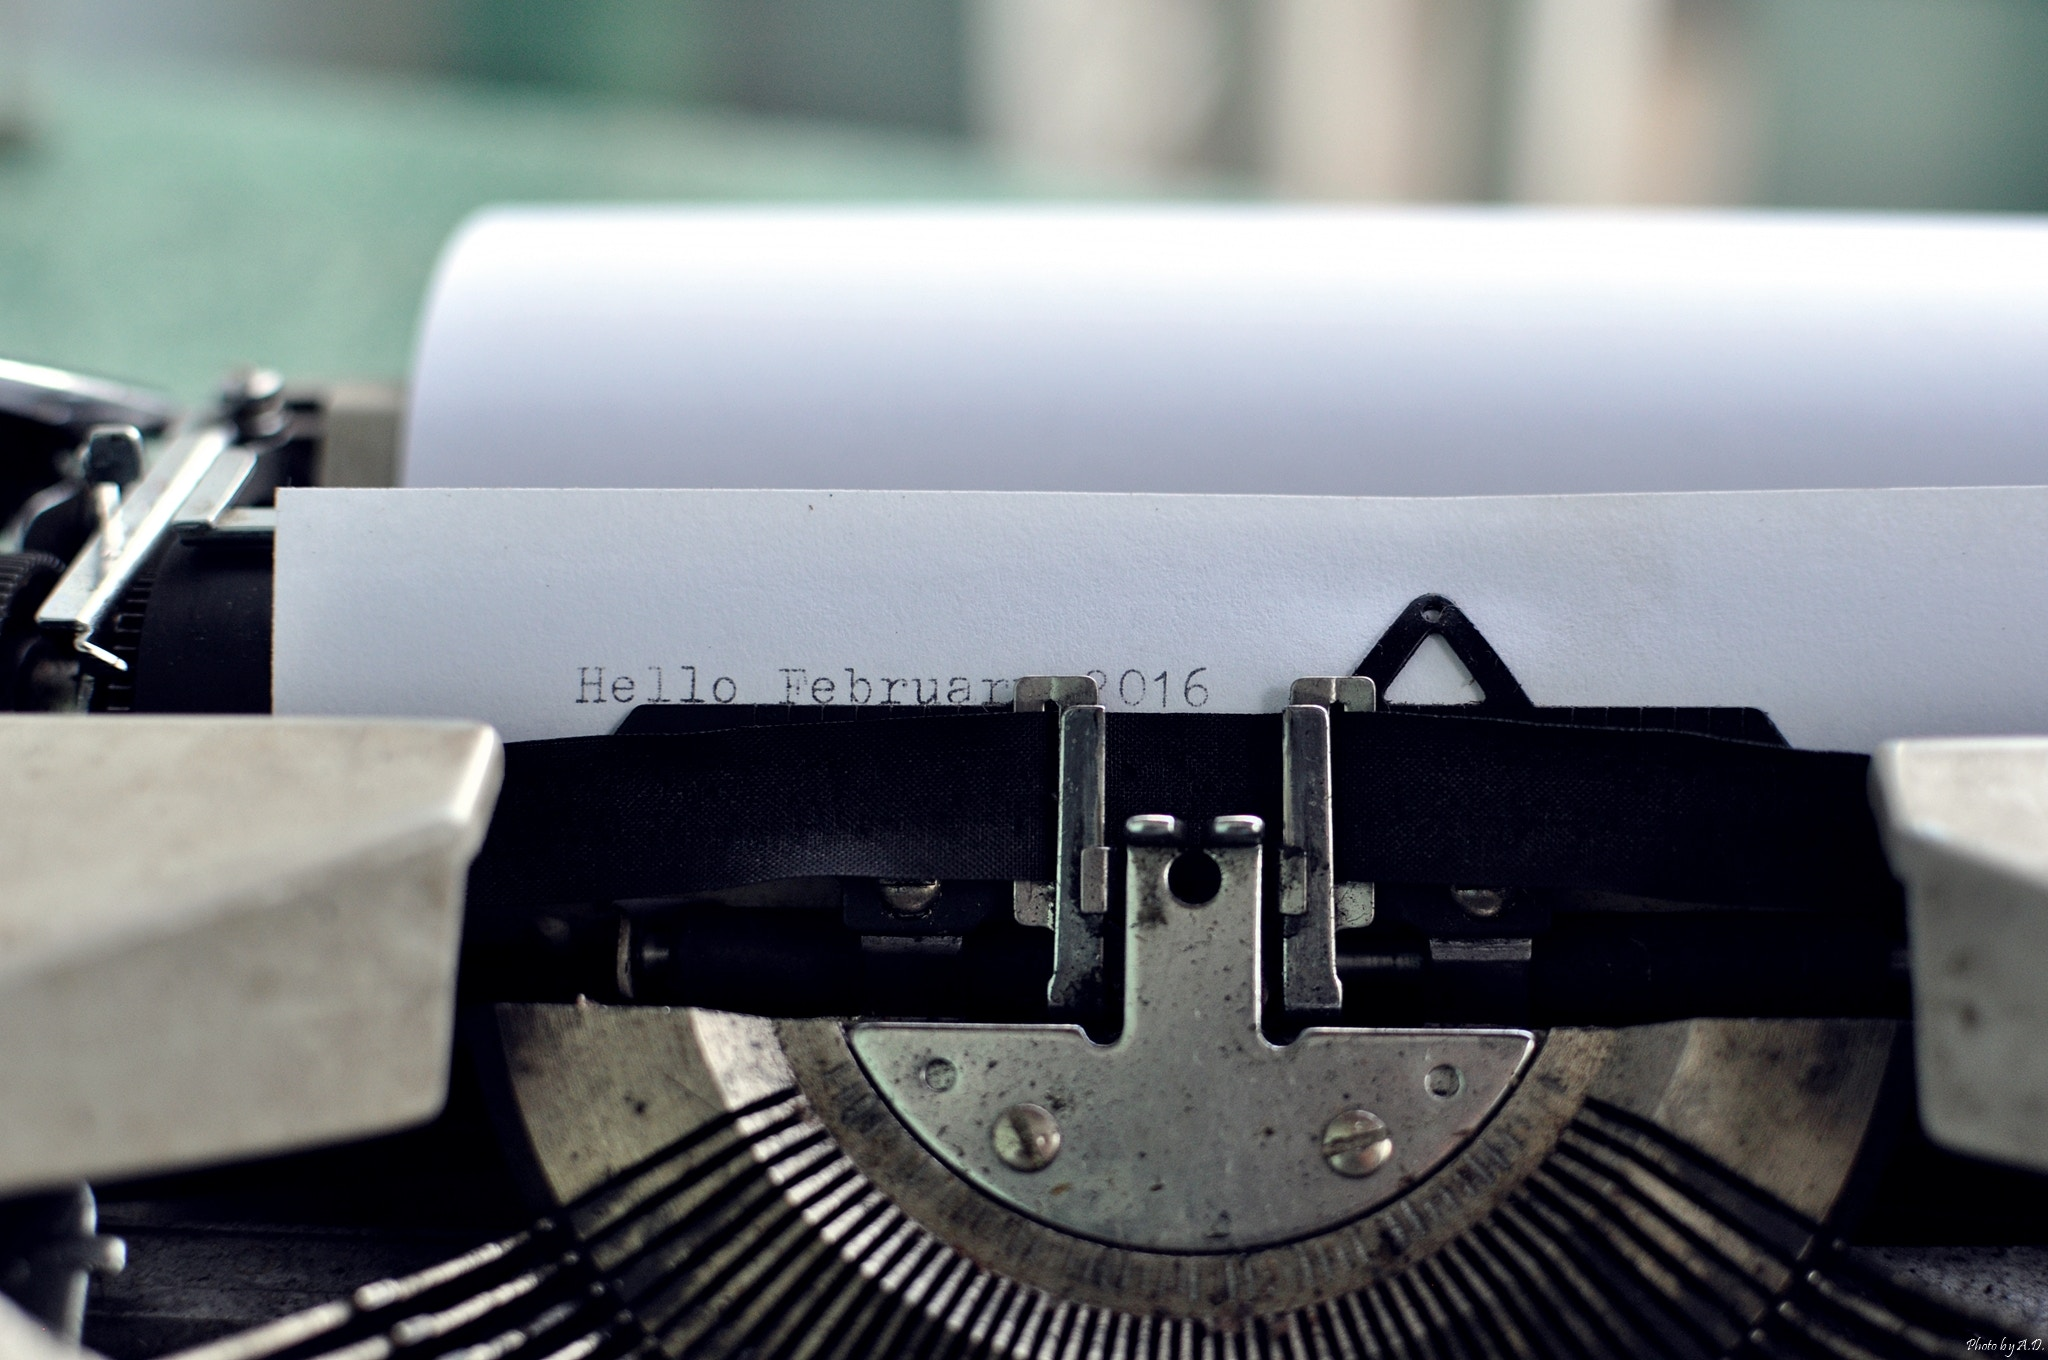 Tips for Copywriting: How to Write Clear, Concise and Compelling Copy